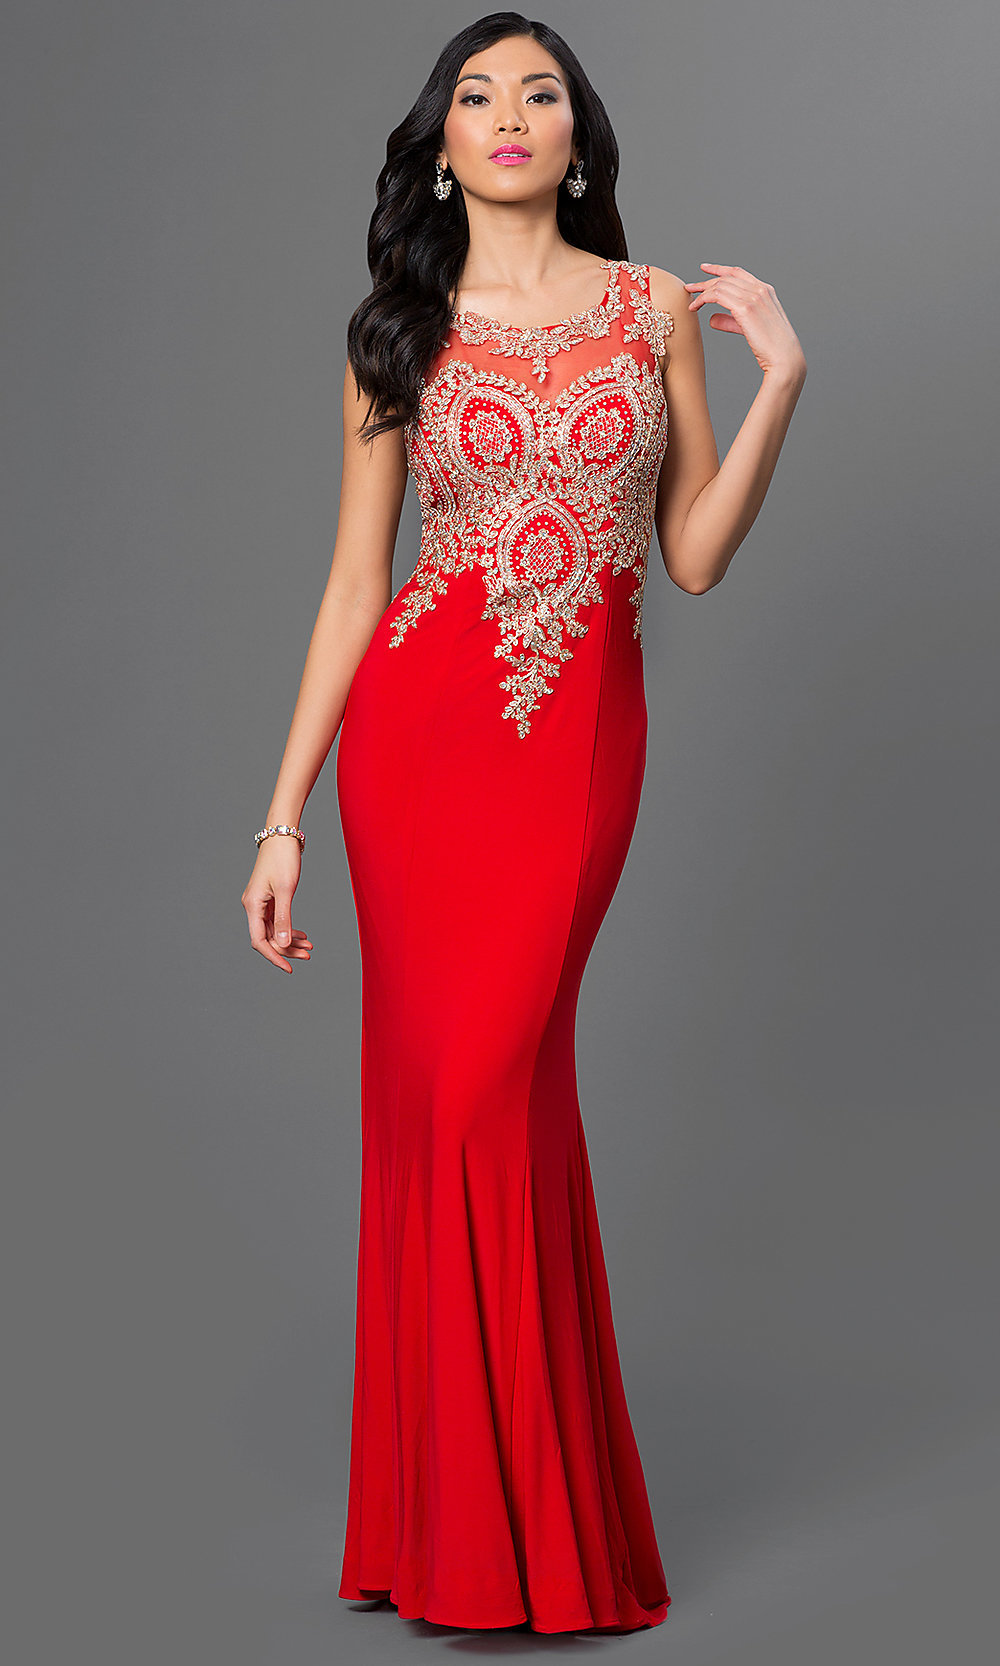 0ab9dff9986 Long Illusion Prom Dress with Train - PromGirl